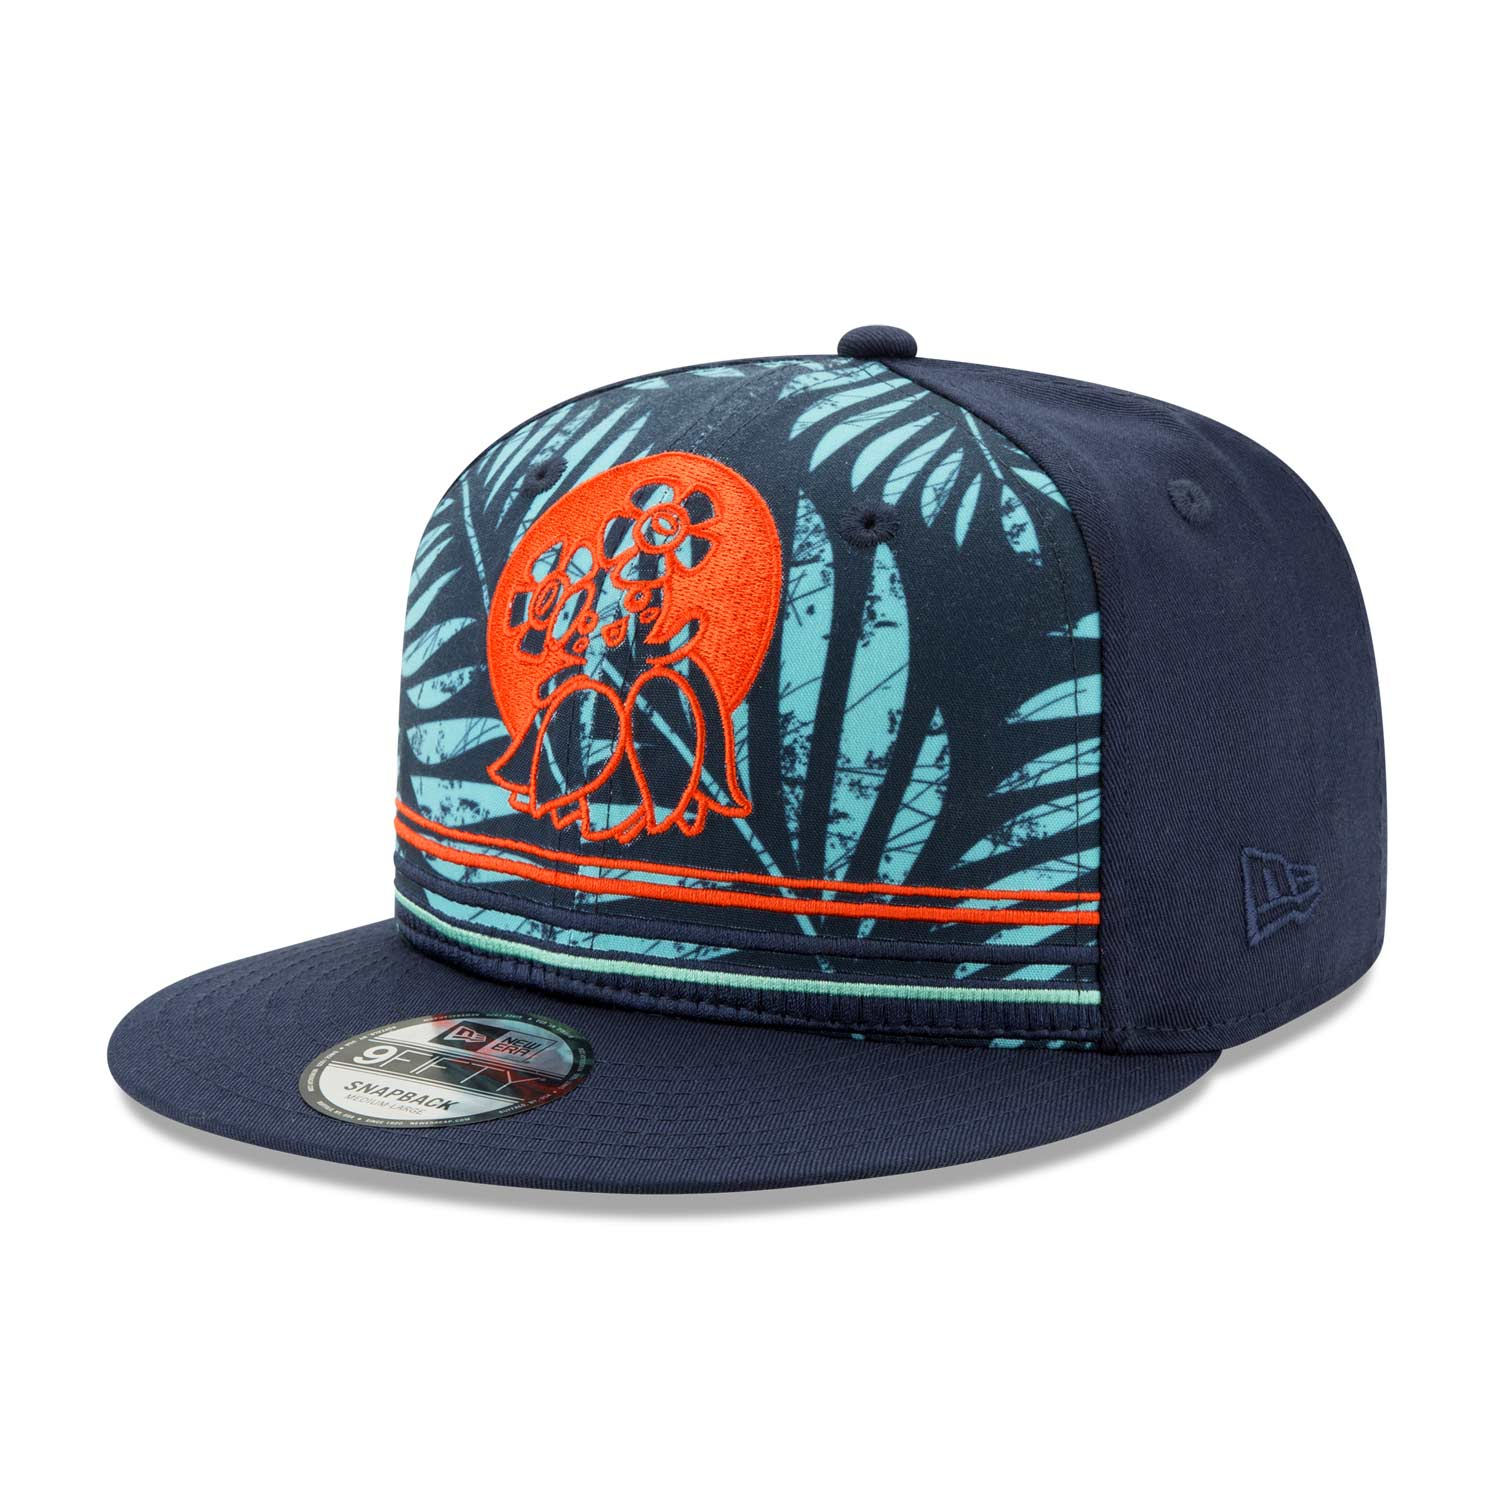 Image for Bellossom Tropics 9FIFTY Baseball Cap by New Era (One Size-Adult) f5d3abdc60